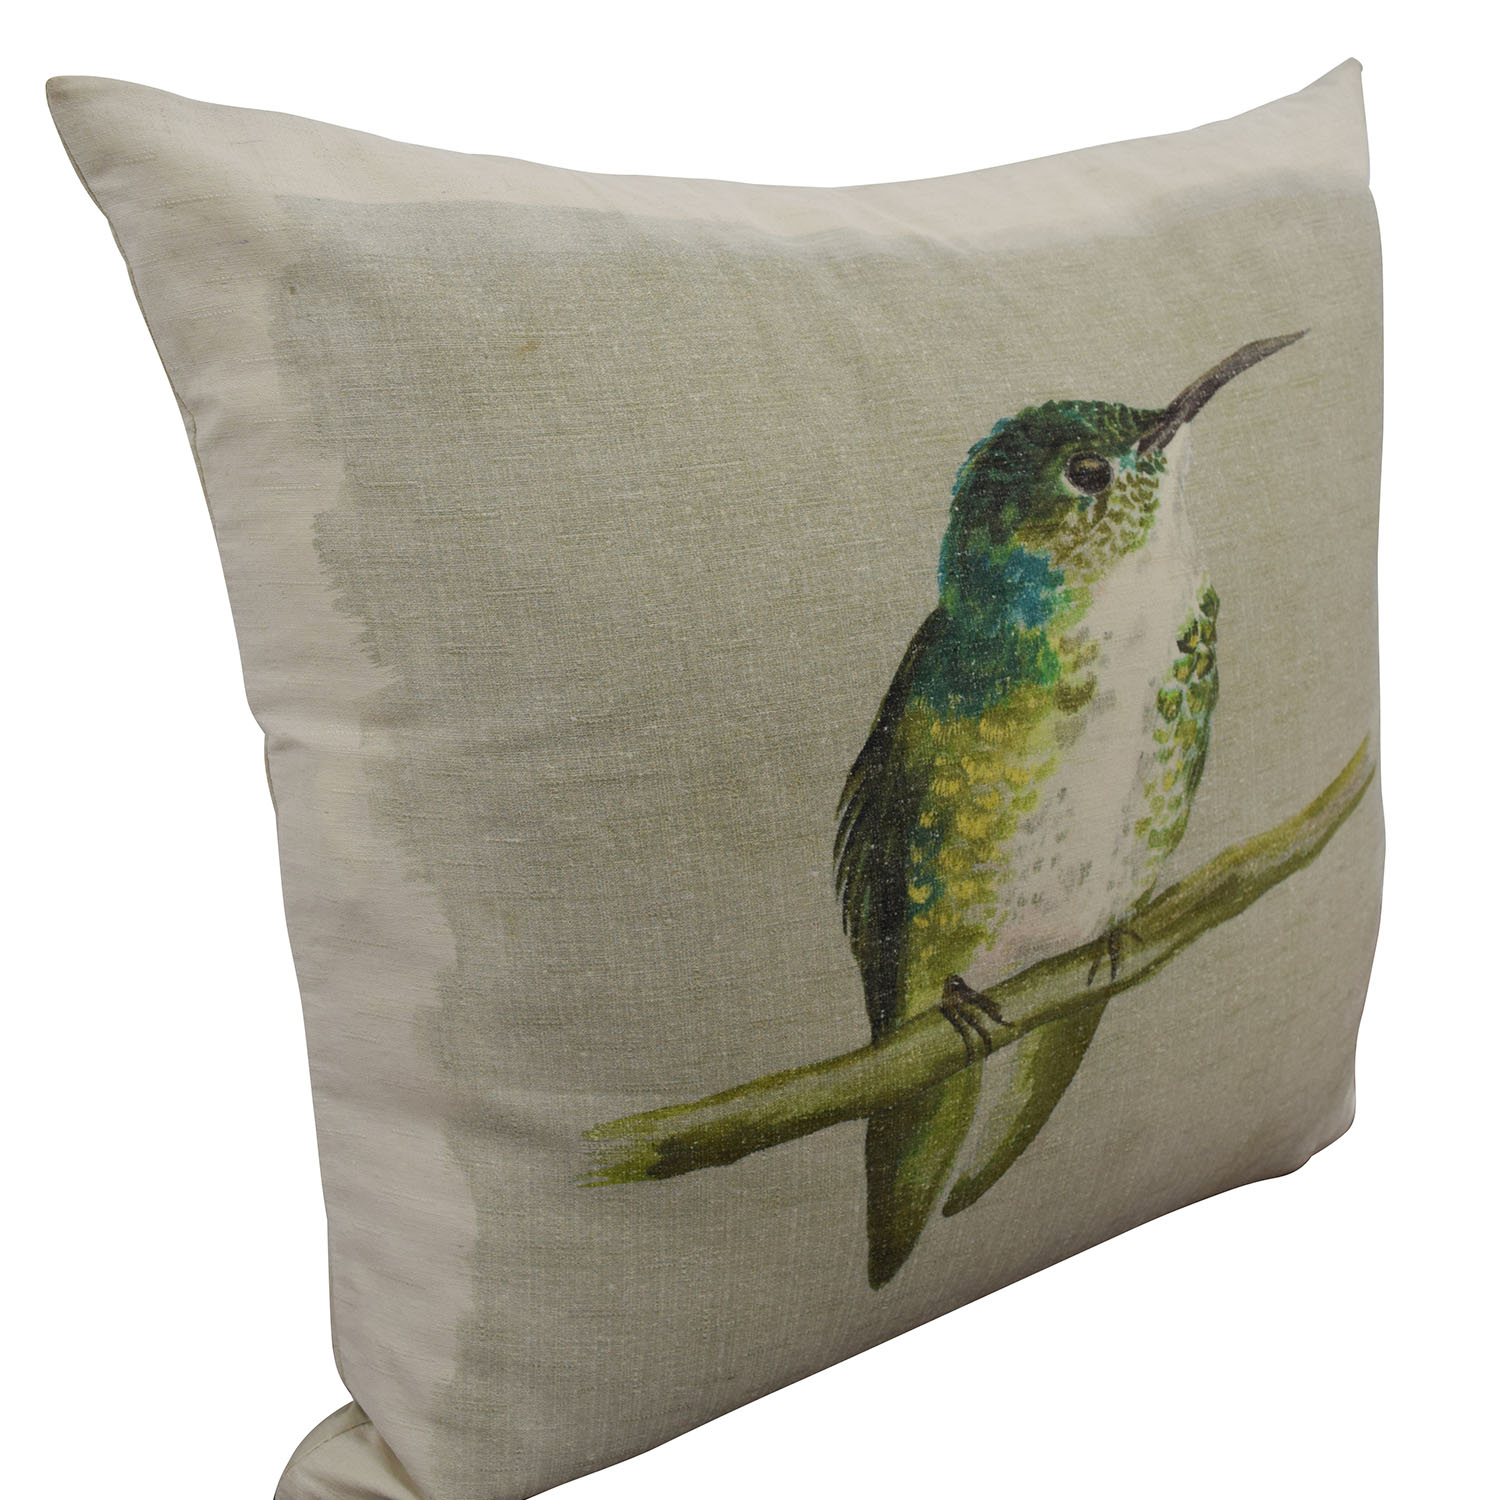 Hand Painted Bird on Beige Toss Pillow used